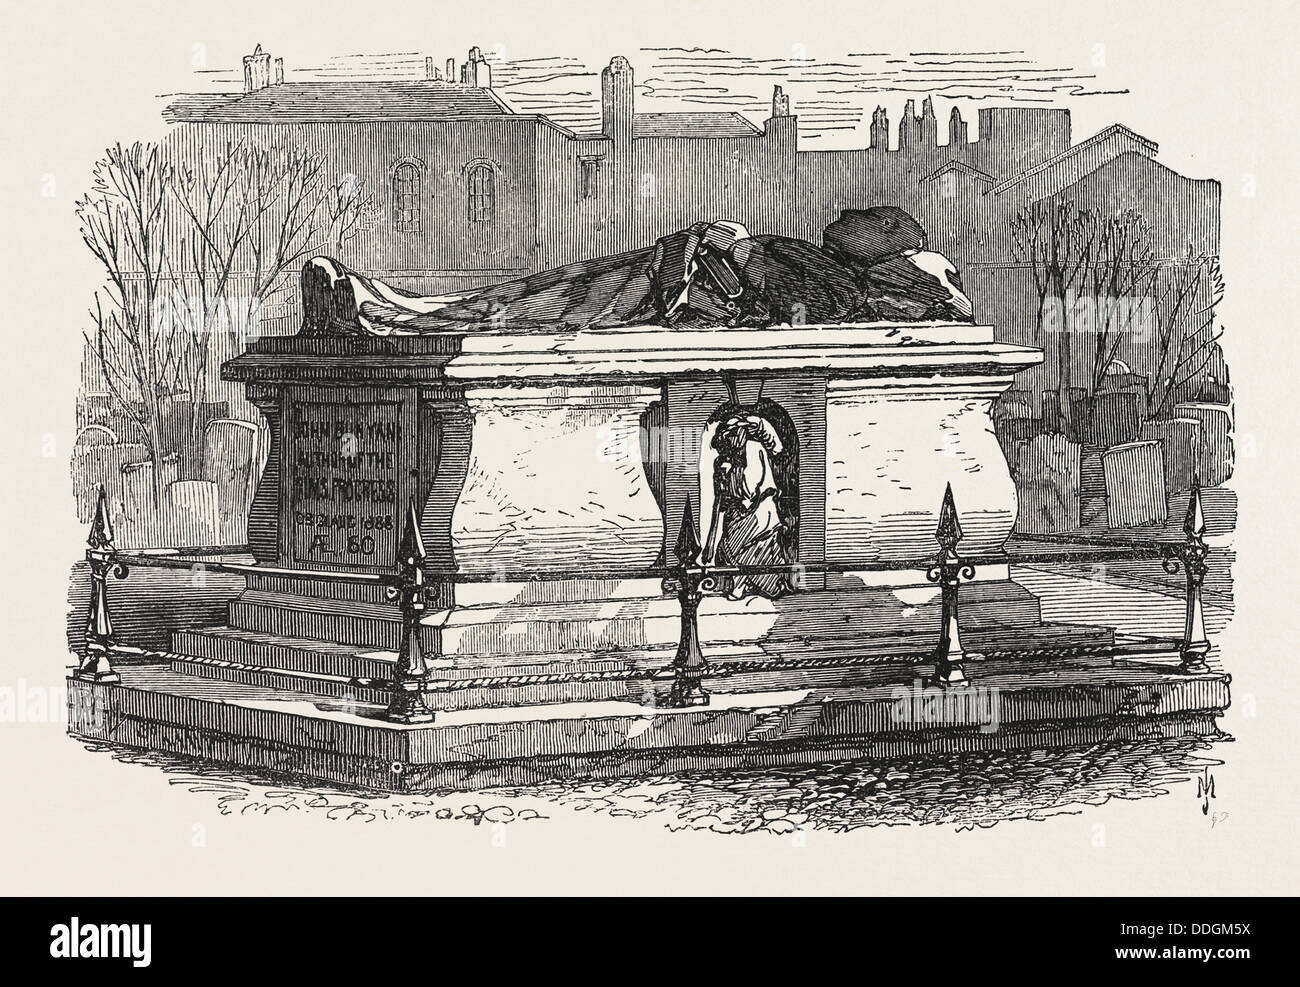 OLD TOMBS IN BUNHILL FIELDS CEMETERY: JOHN BUNYAN'S TOMB, 1869 - Stock Image